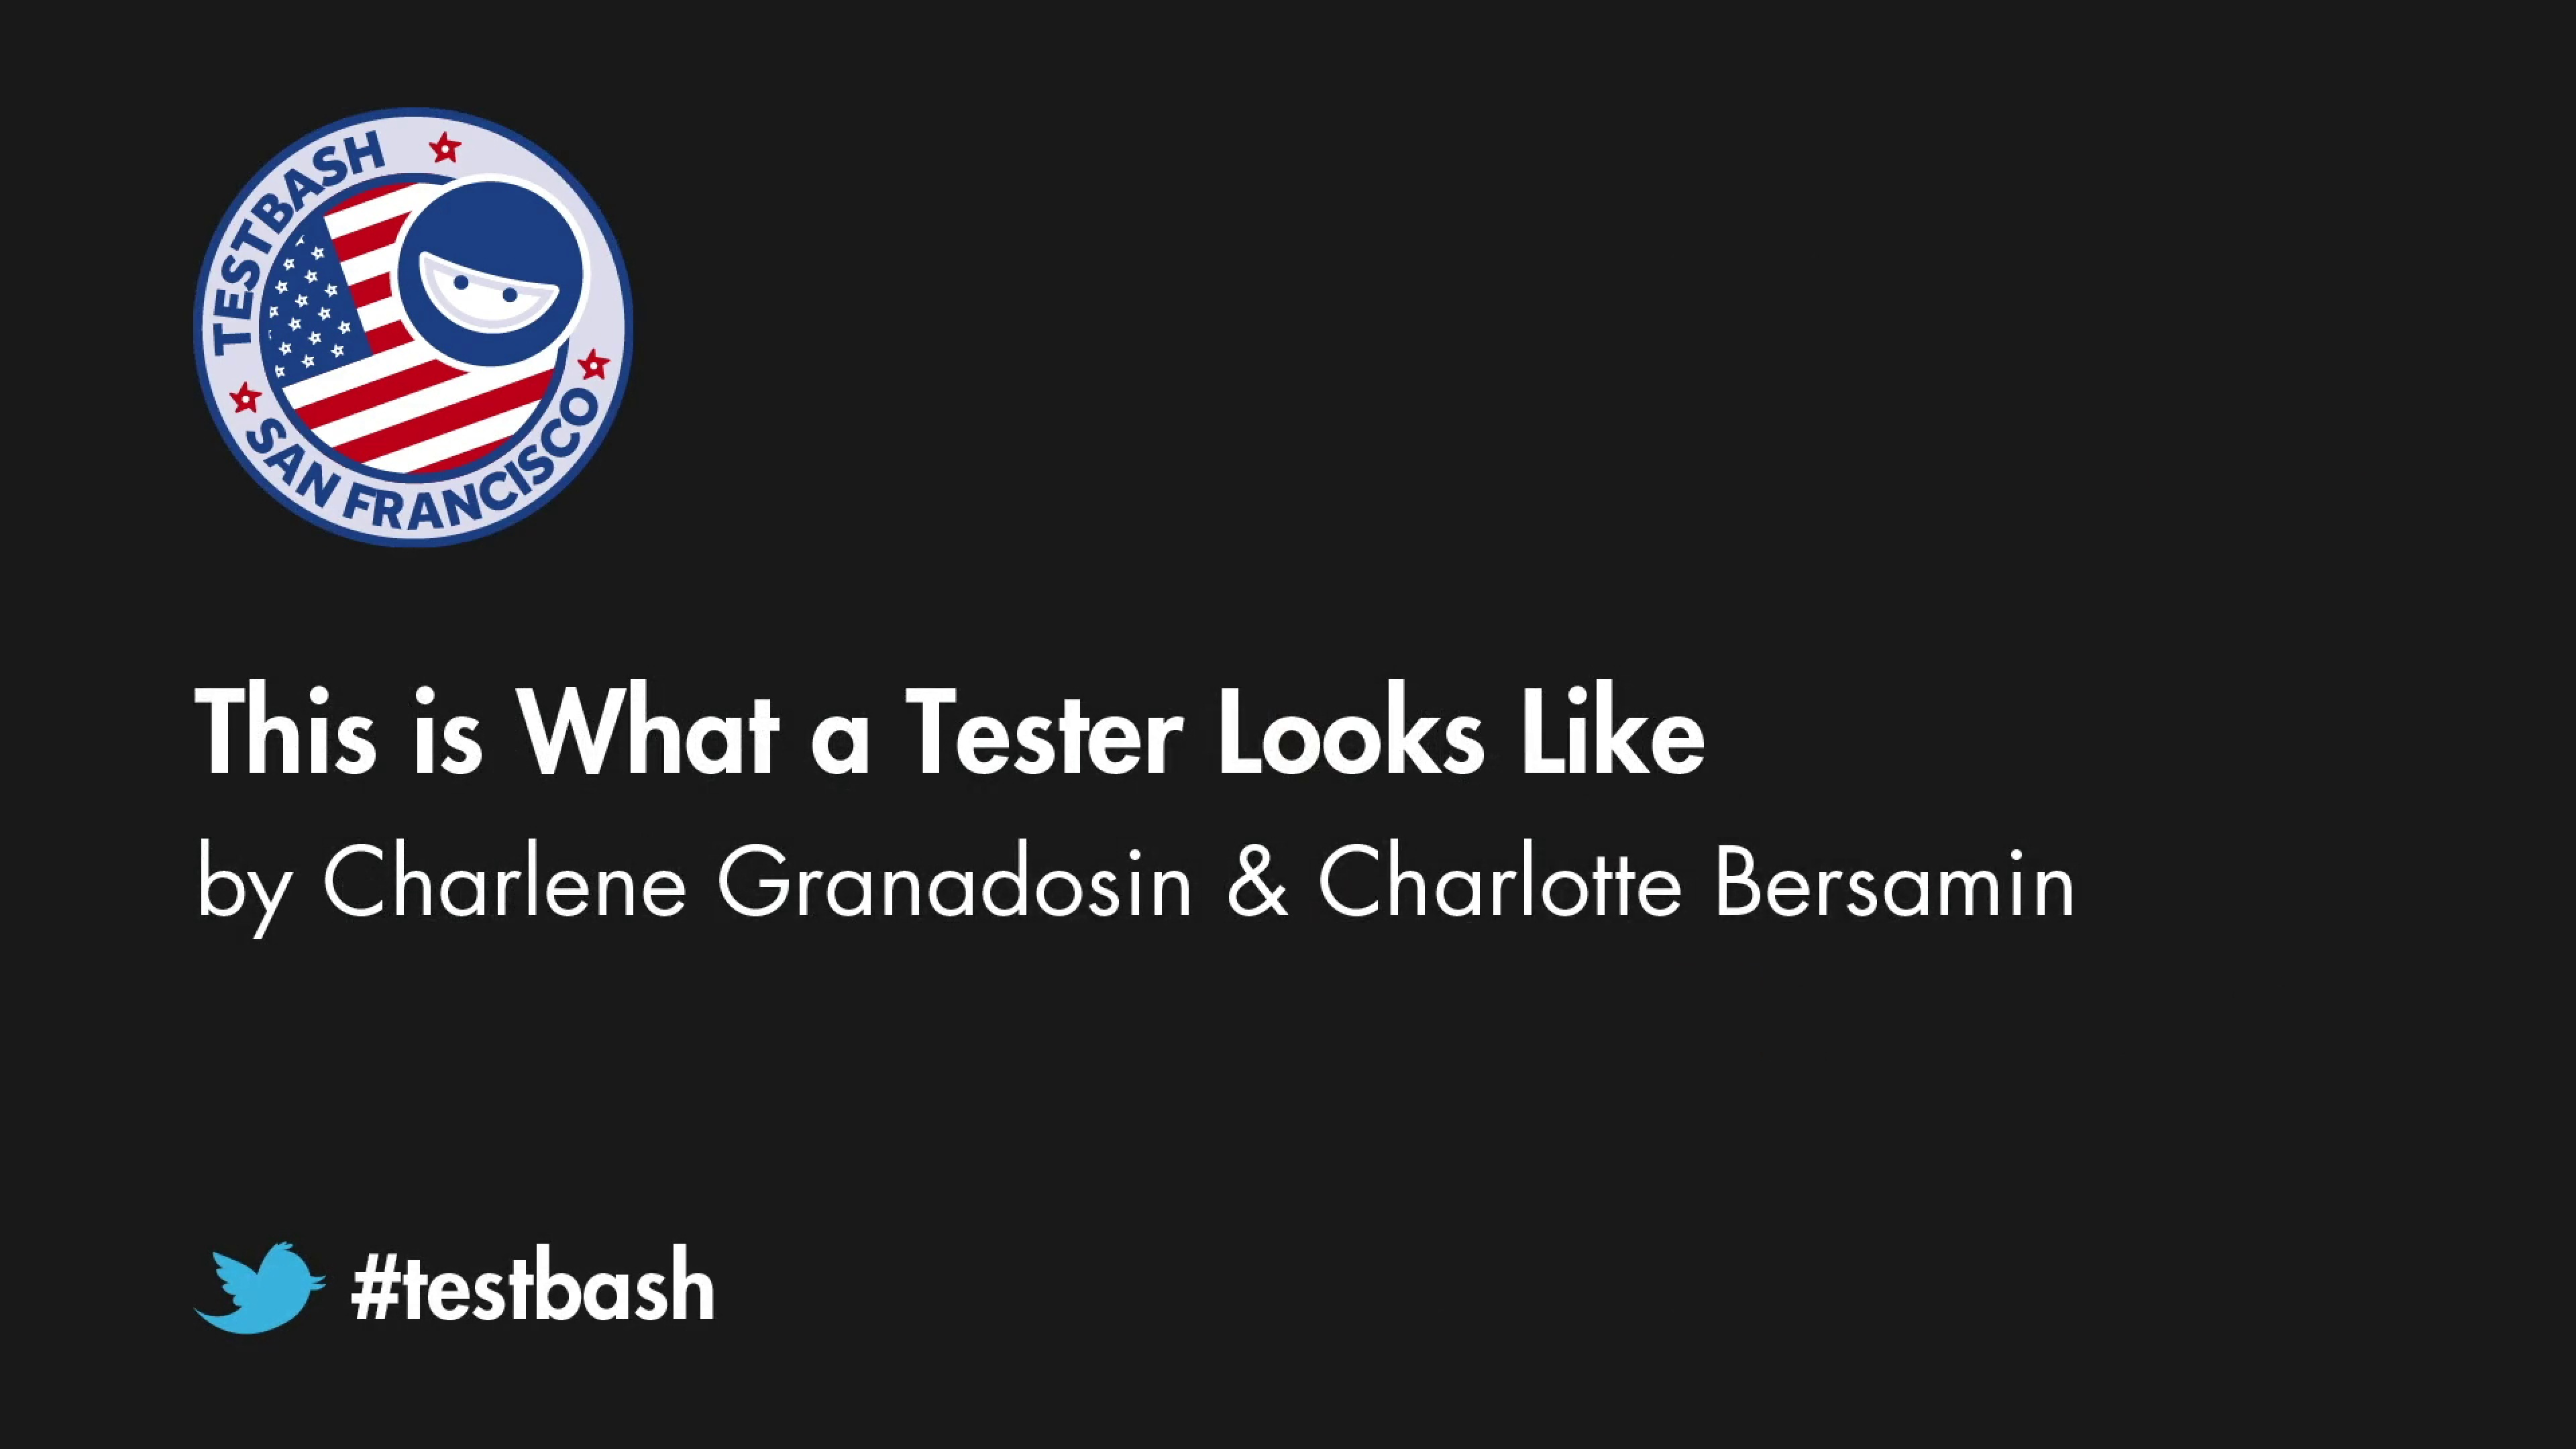 This is What a Tester Looks Like - Charlene Granadosin and Charlotte Bersamin